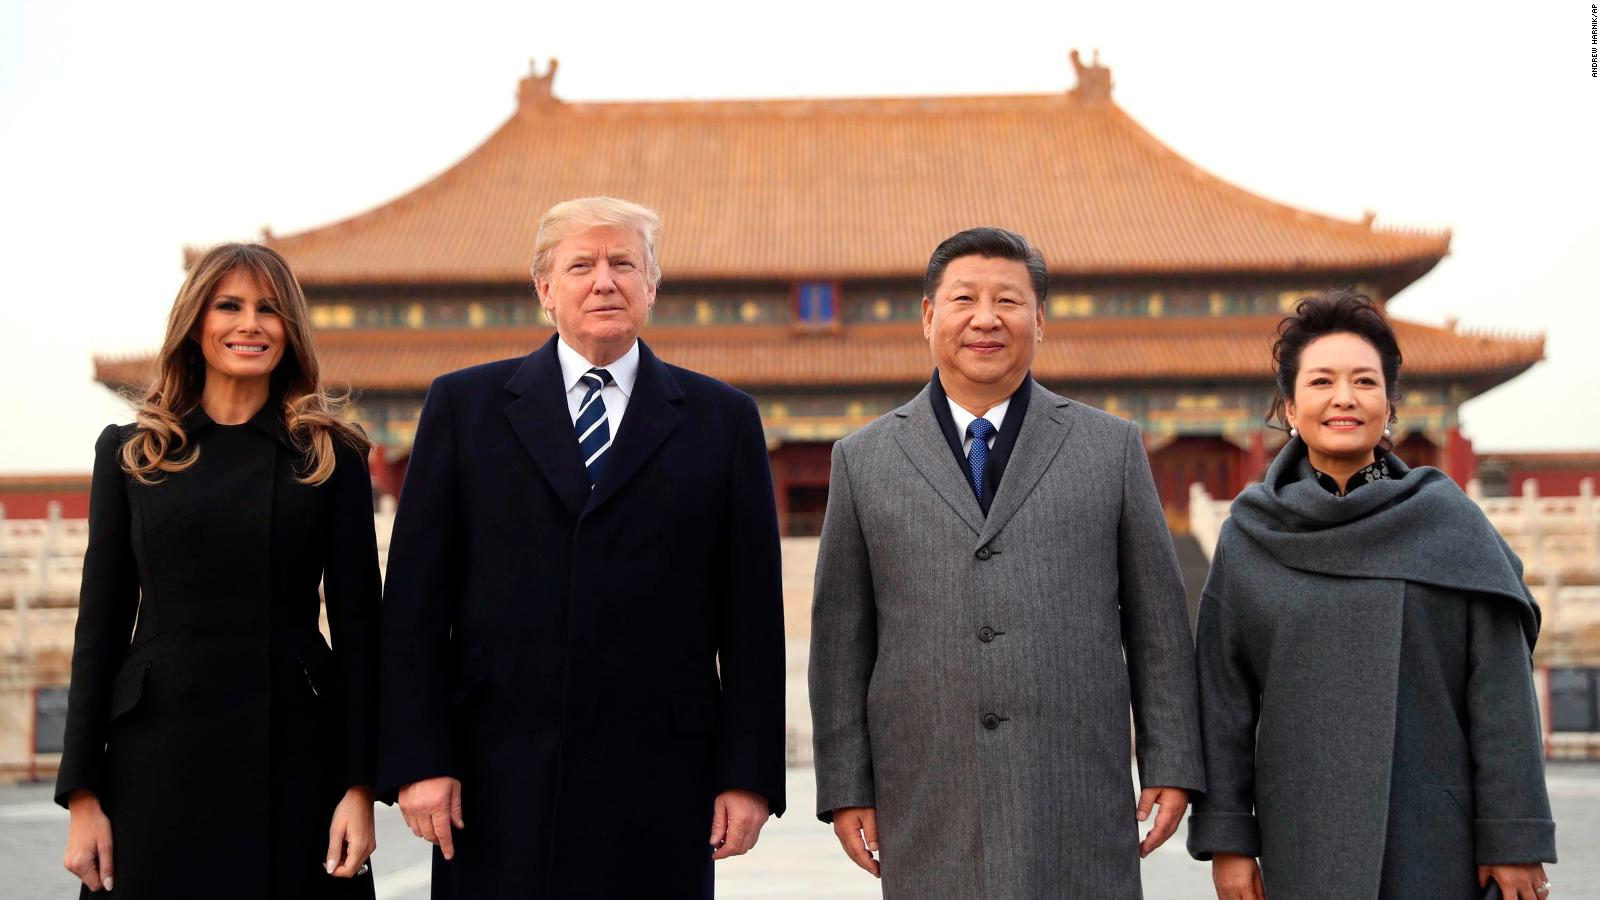 Trump once trashed China. Now, they're friends - CNNPolitics